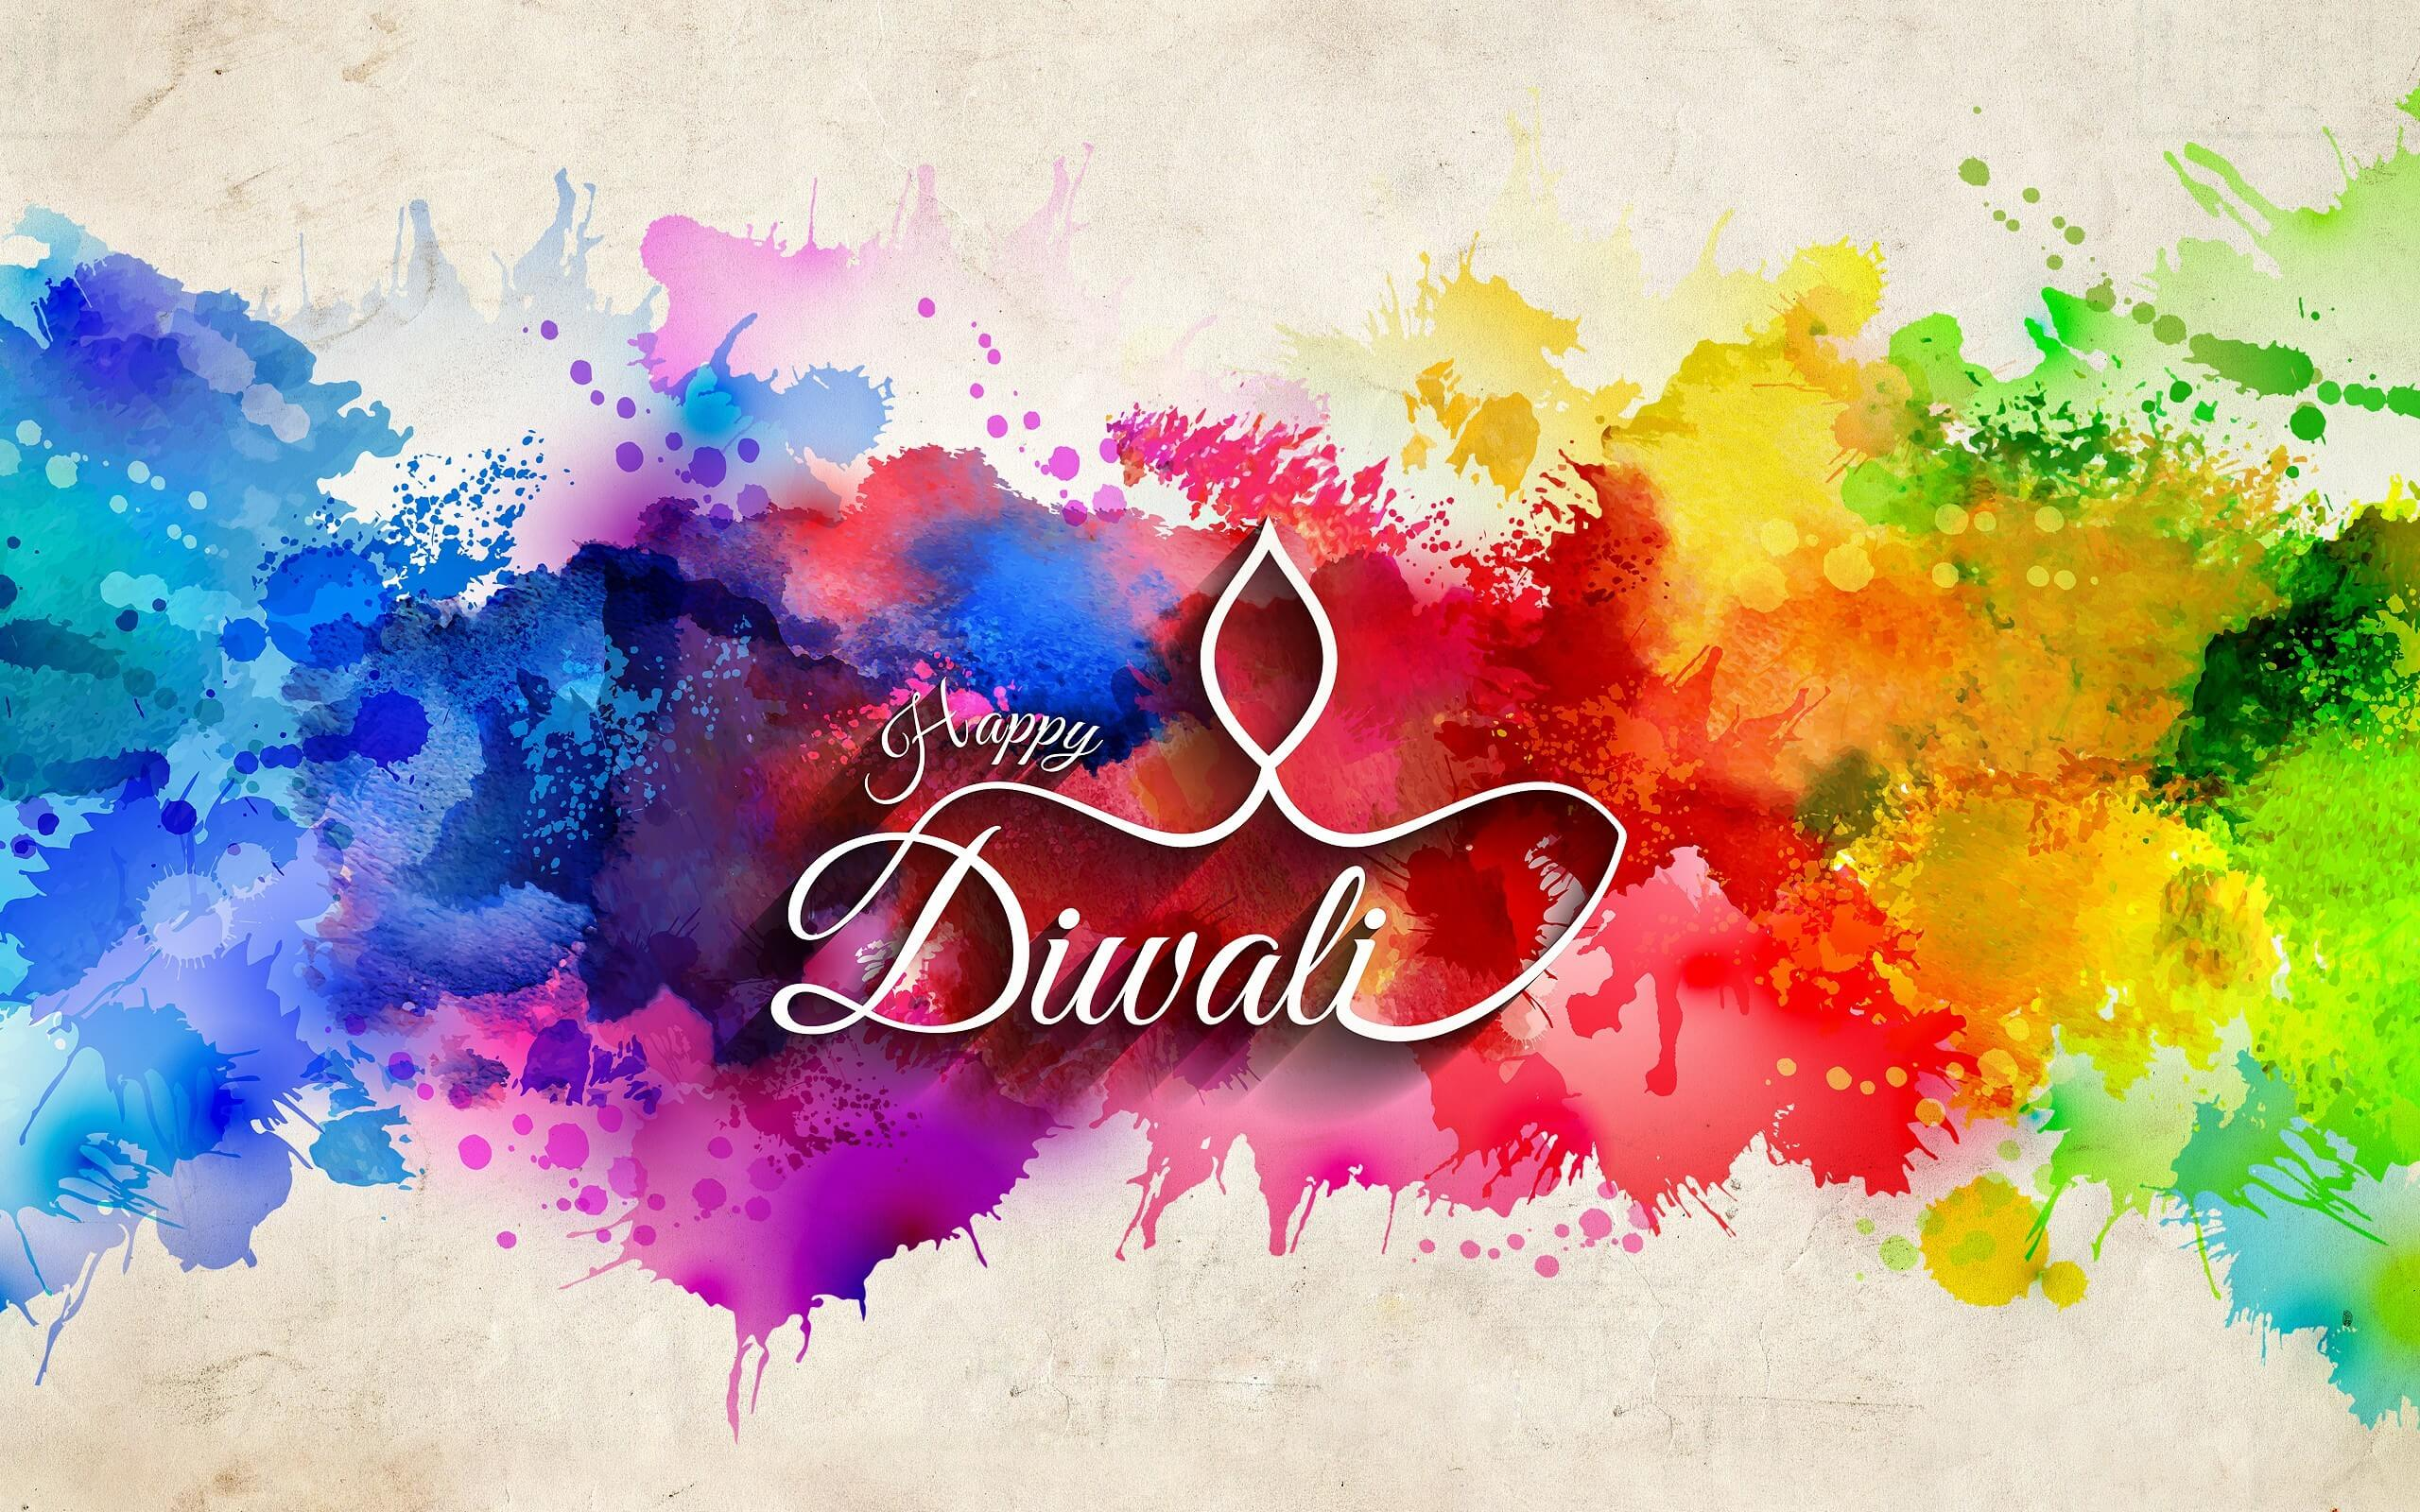 diwali deepavali modern latest hd pc mobile wallpaper